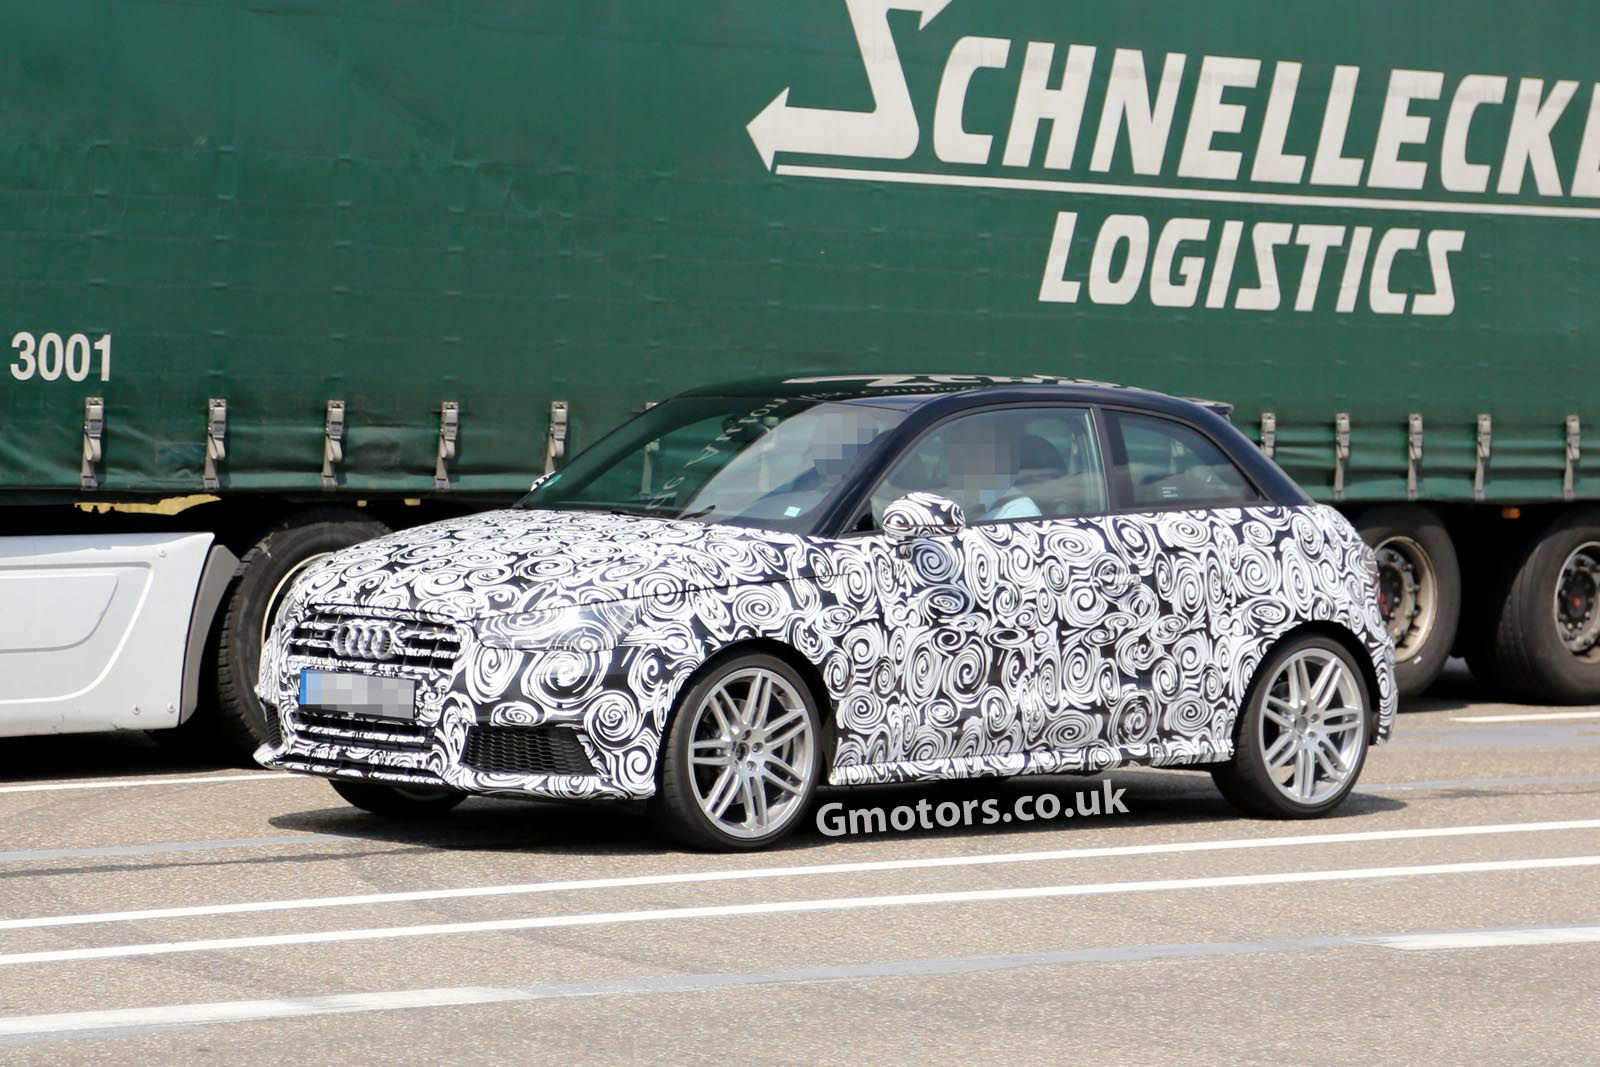 we have the very first spy shots of the new 2014 Audi A1/S1 Facelift